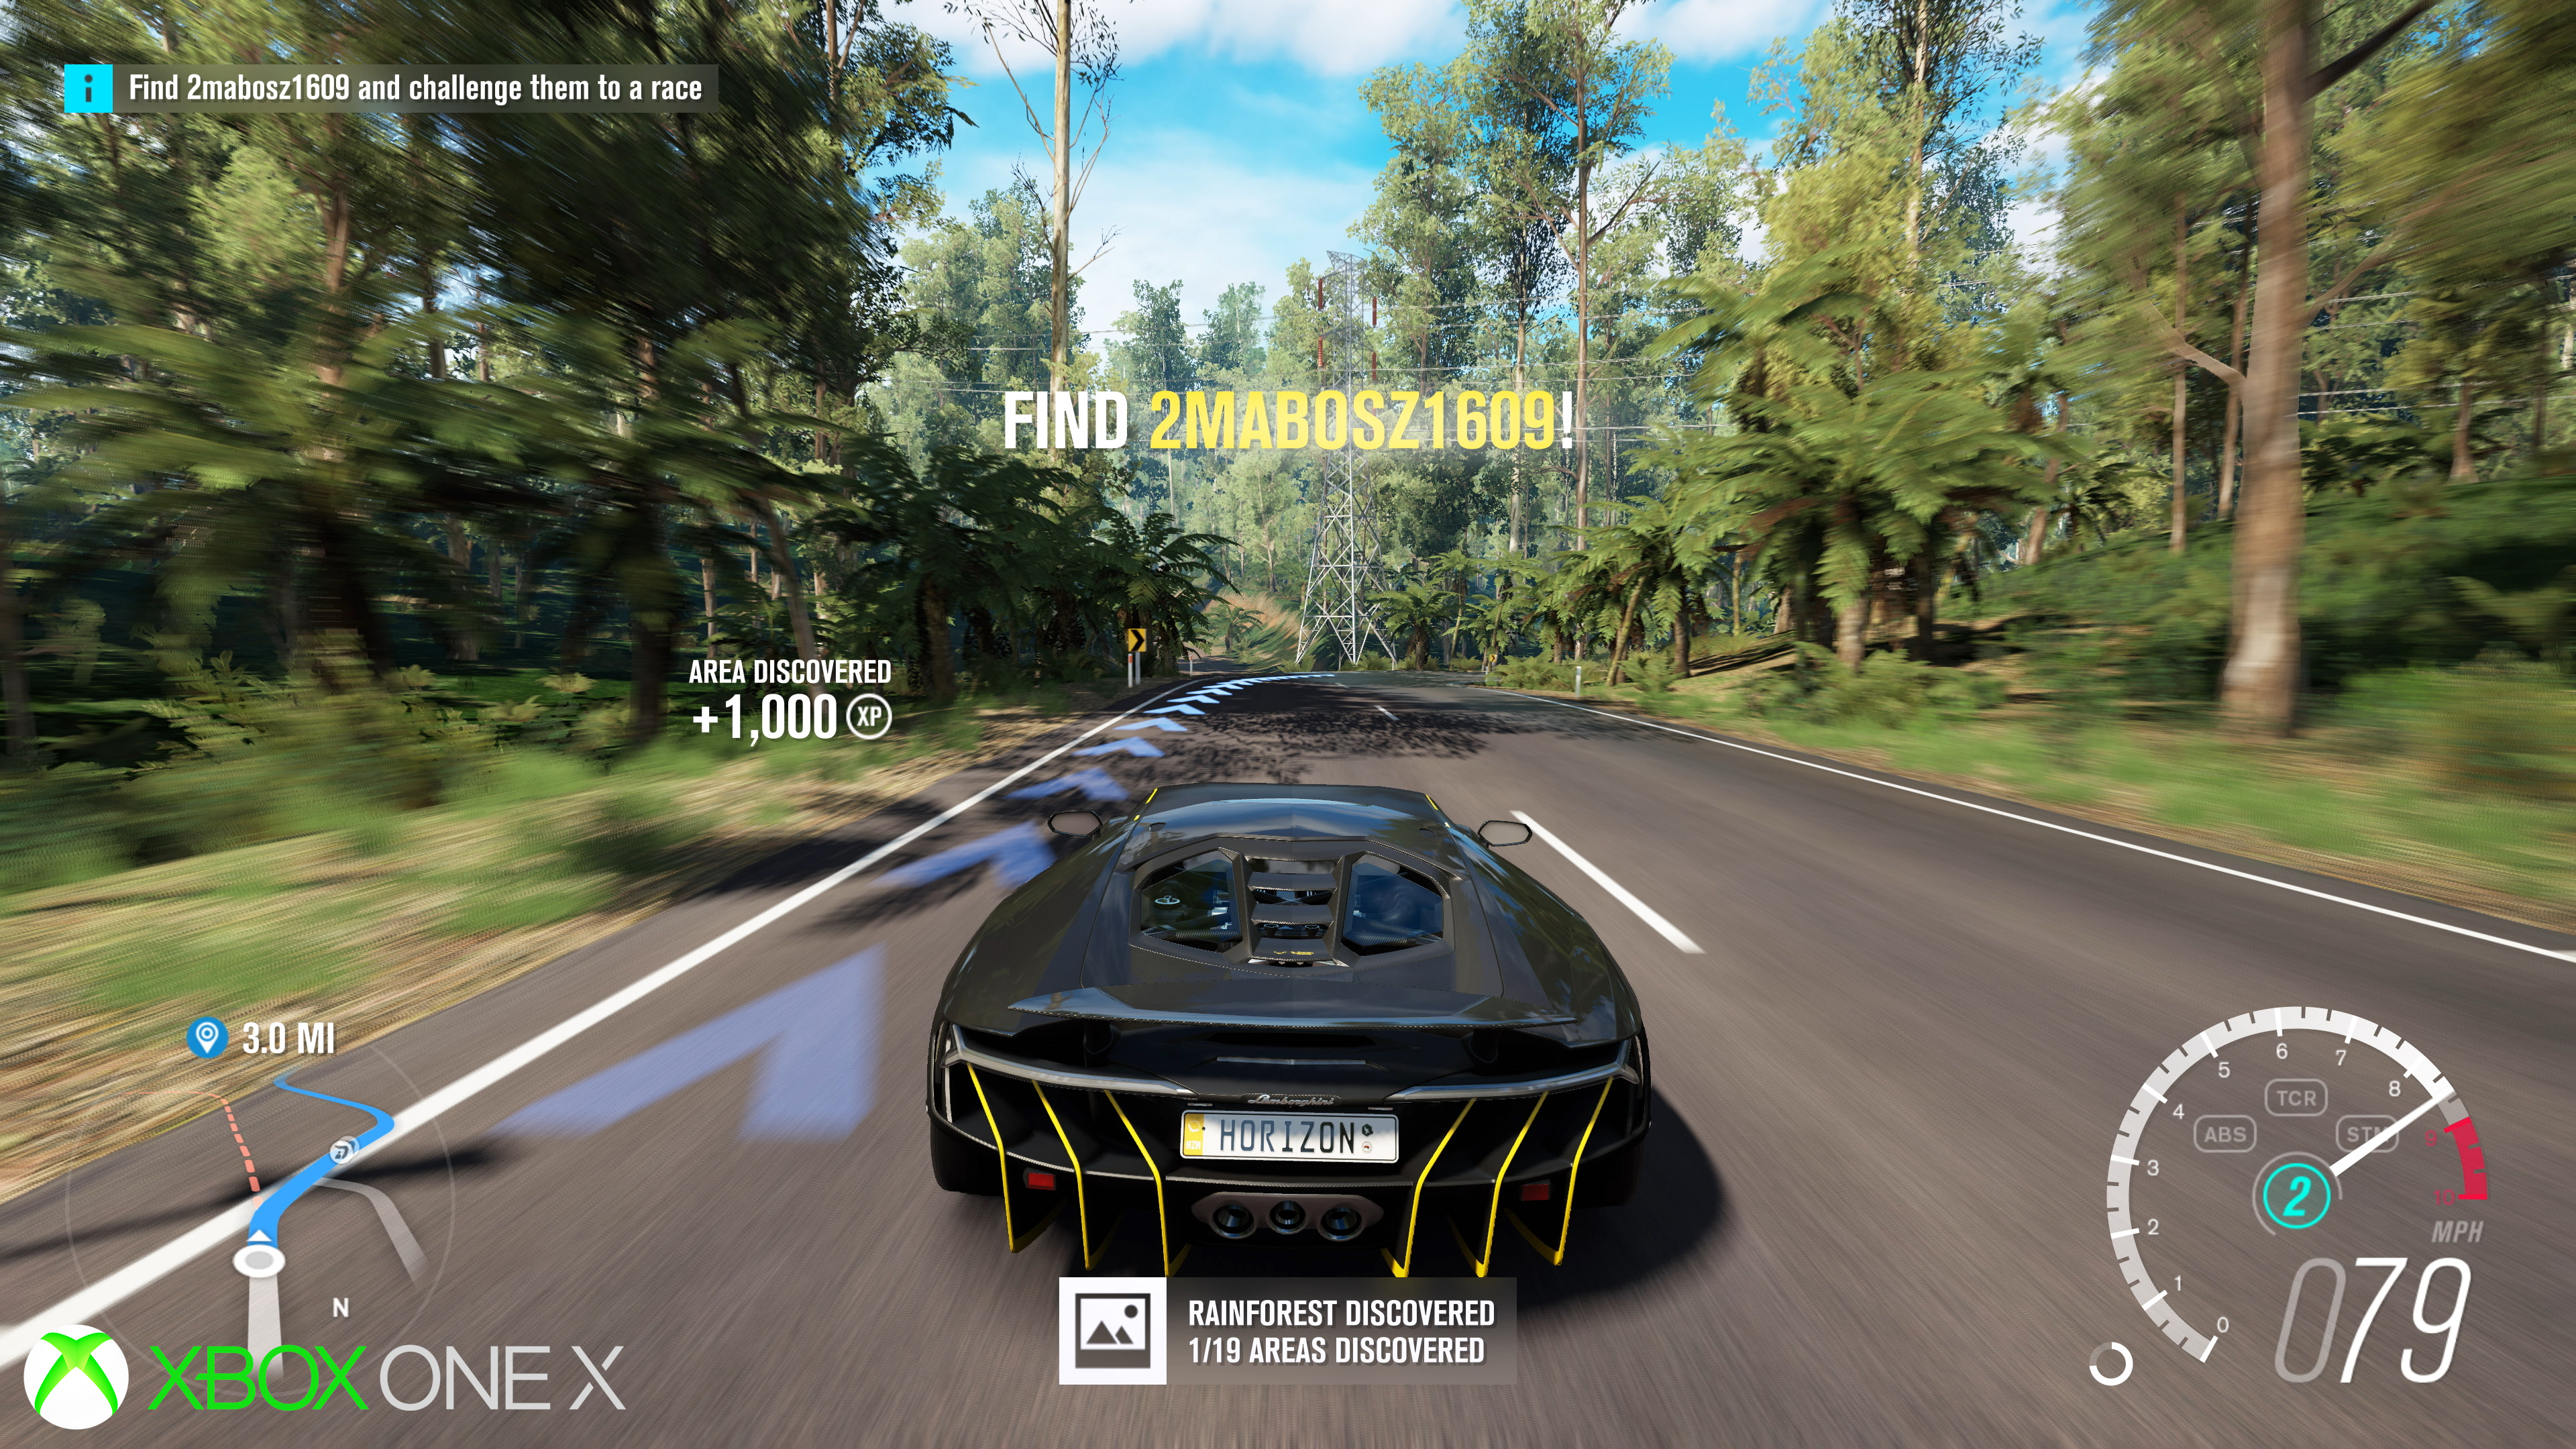 Forza Horizon 3's Xbox One X update is a true showcase for